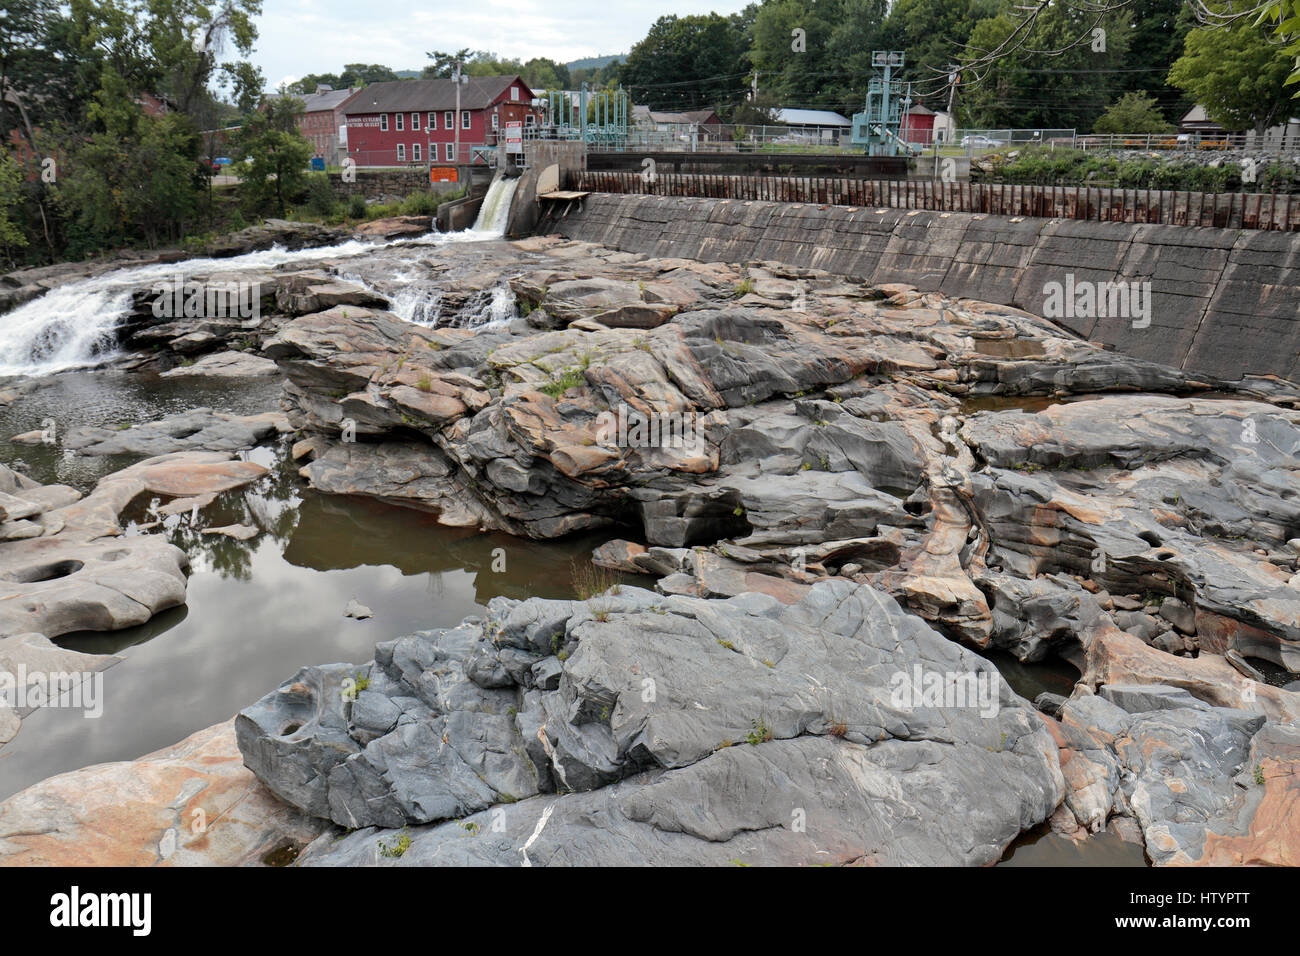 Glacial potholes (a feature of glaciation) on the Deerfield River, Shelburne Falls, Massachusetts. United States. - Stock Image